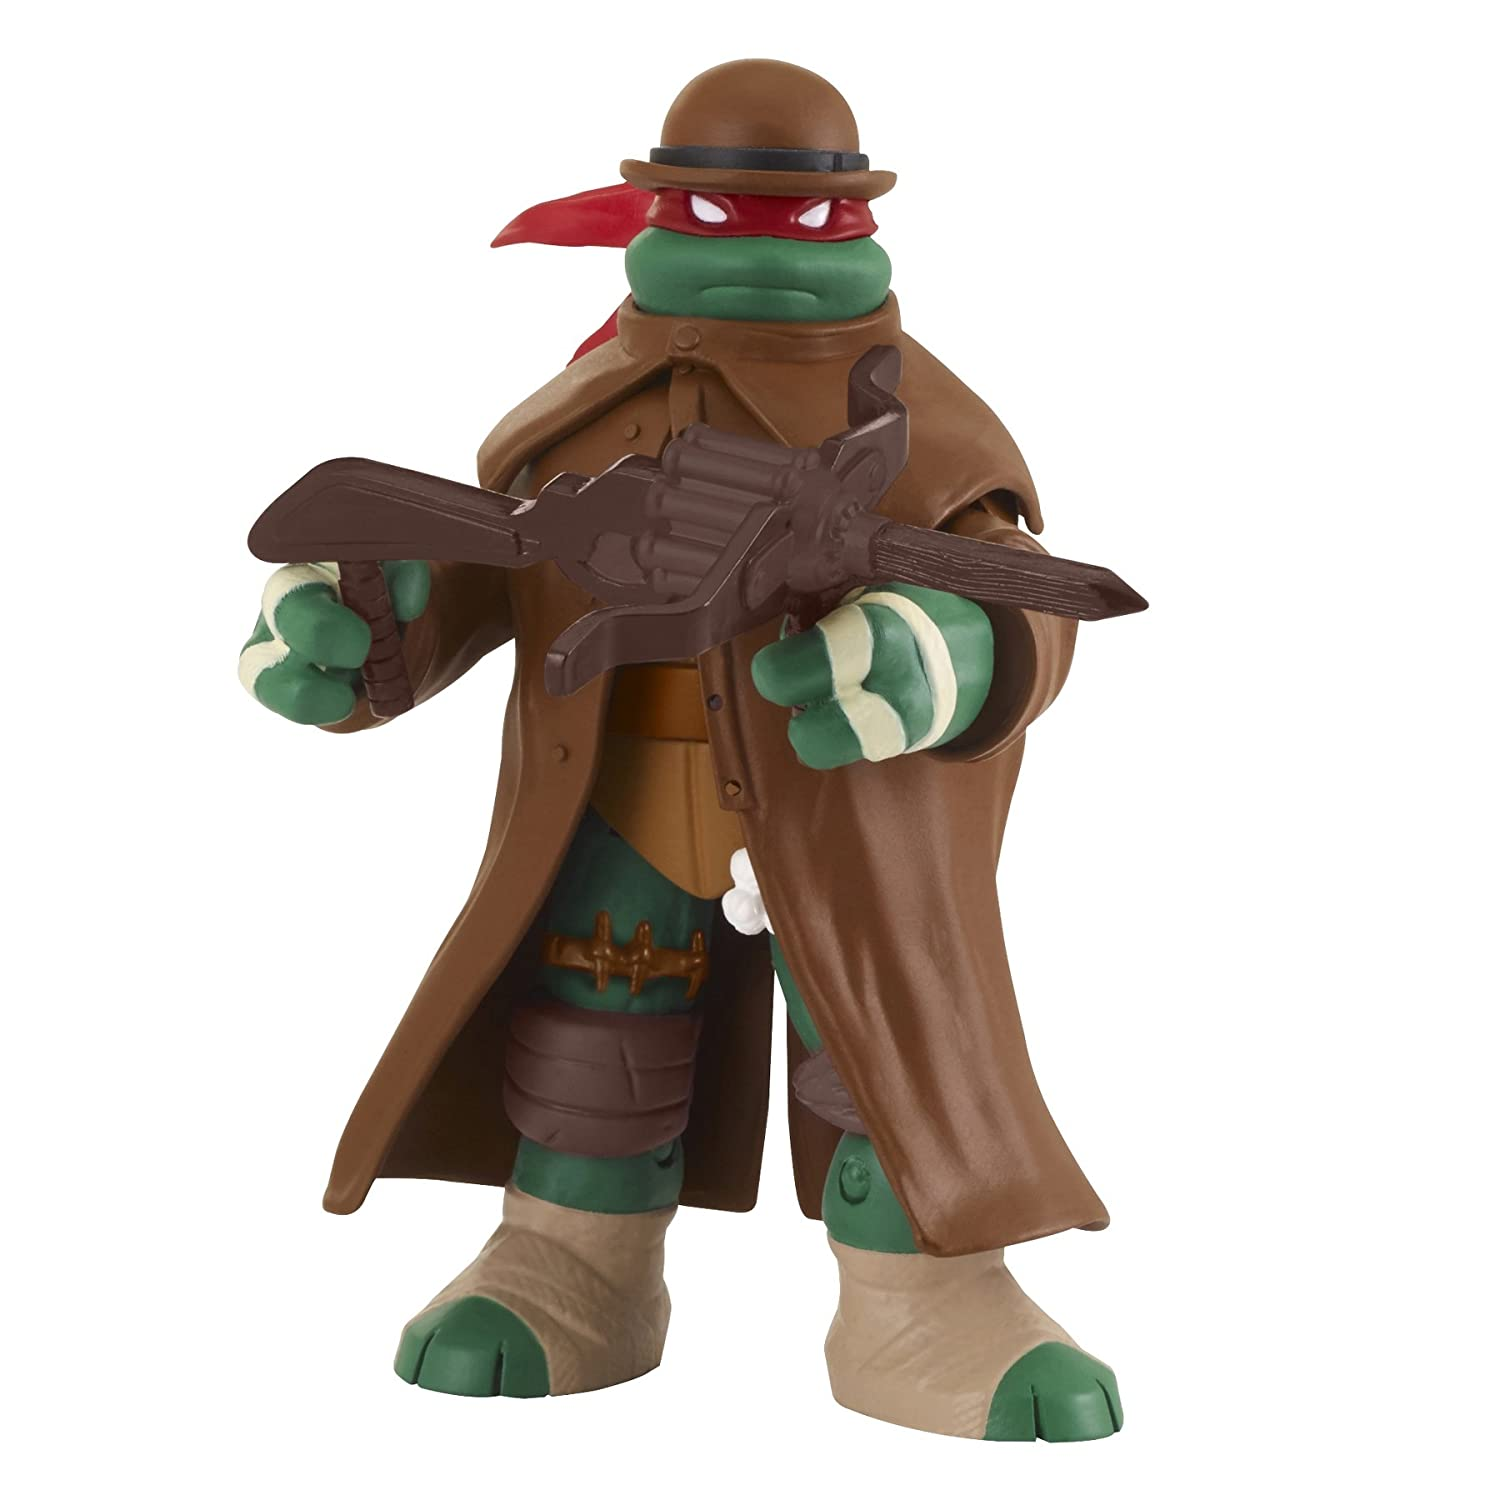 Teenage Mutant Ninja Turtles Monster Hunter Raphael Basic Action Figure, 5""